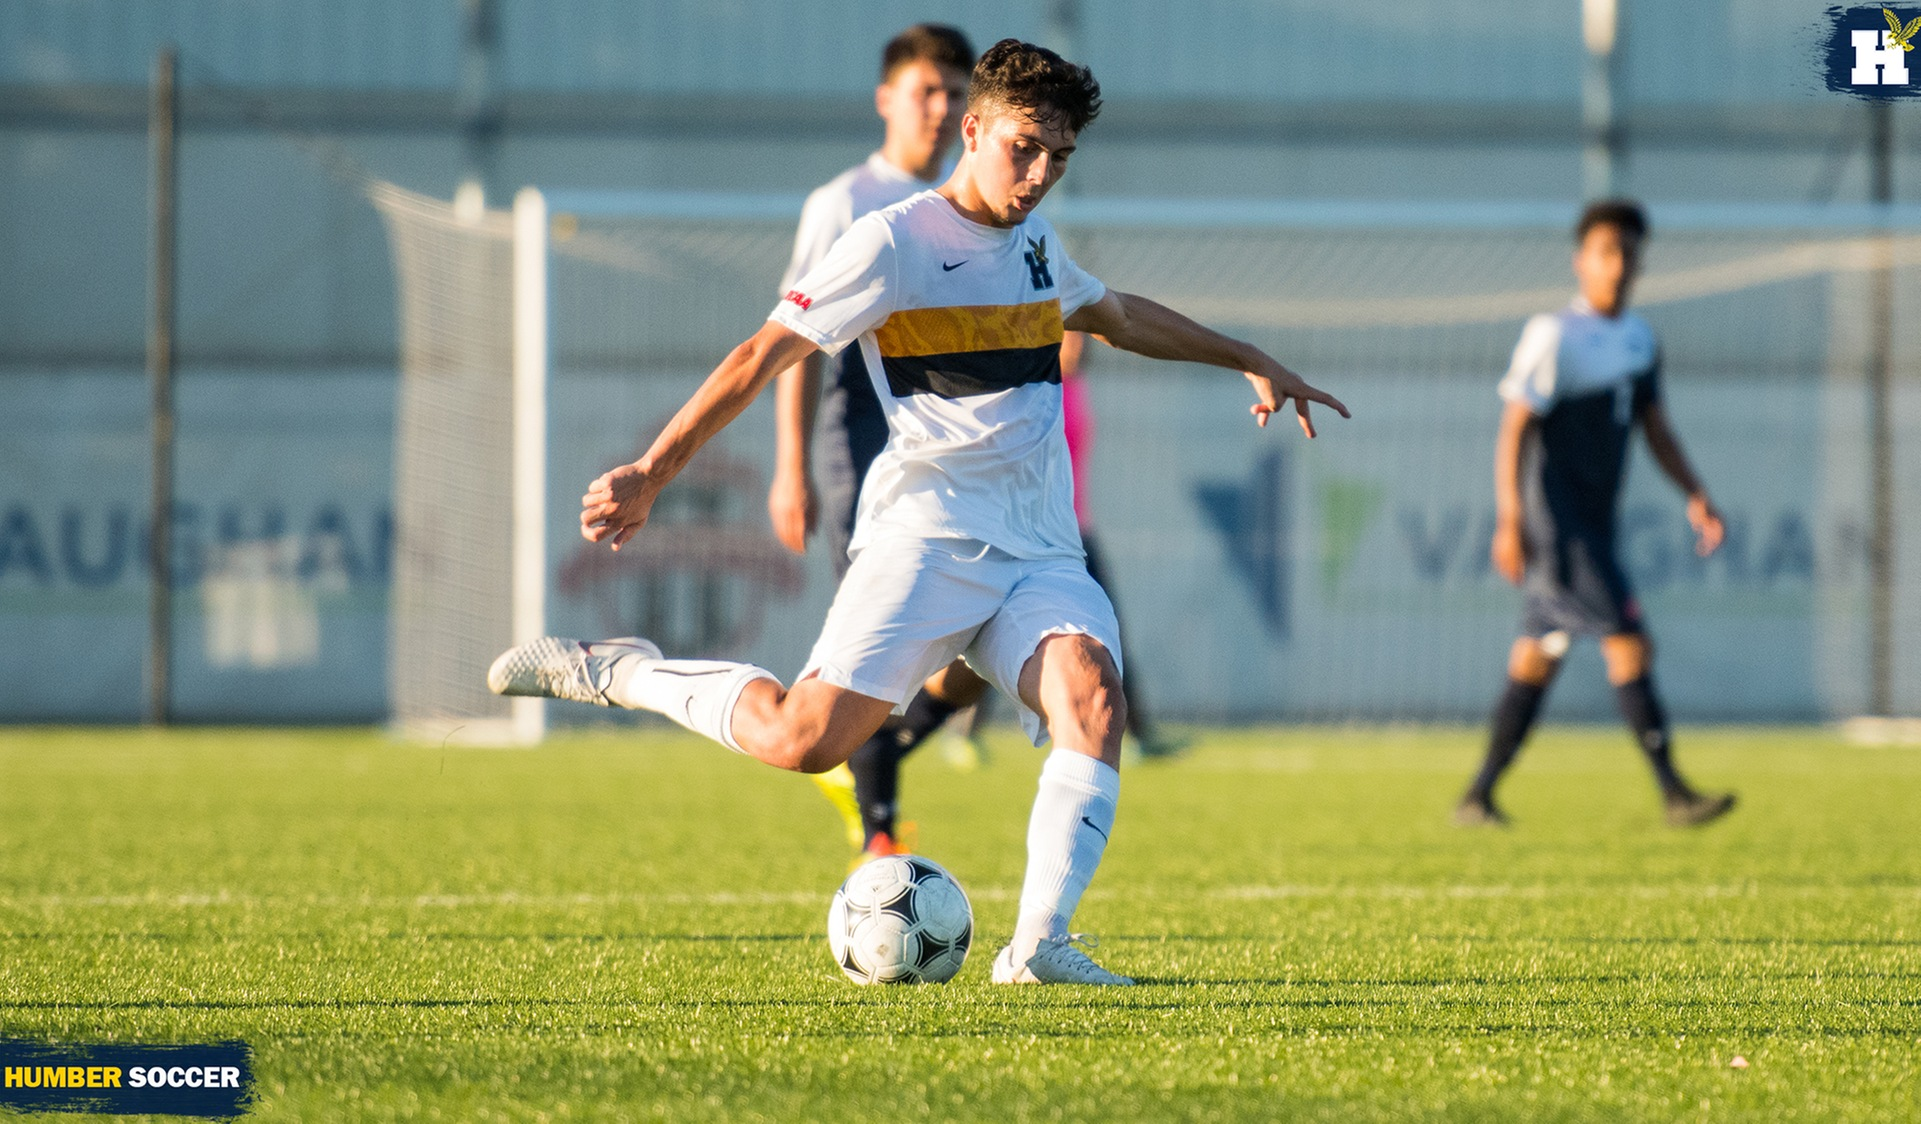 No. 2 MEN'S SOCCER ESCAPE UTM WITH 4-3 VICTORY